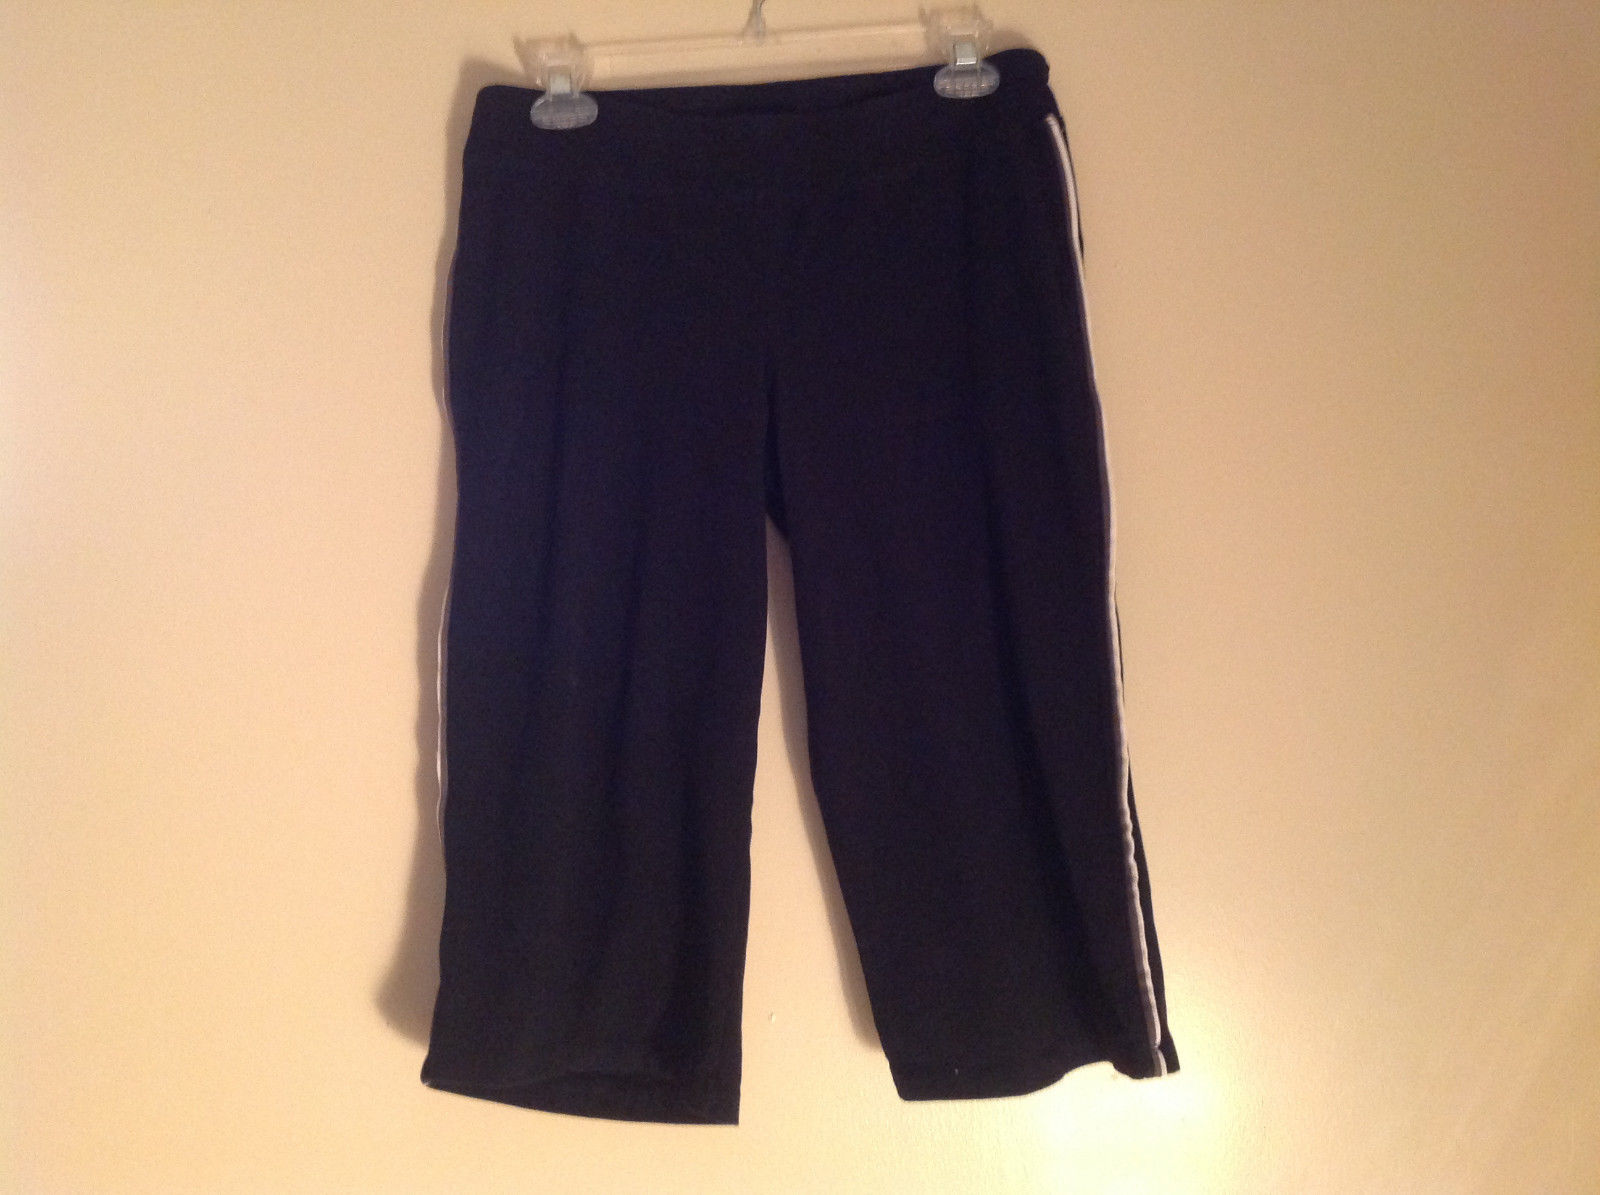 Black with White Line Down Side Workout Pants Champion Drawstring Waist Size M